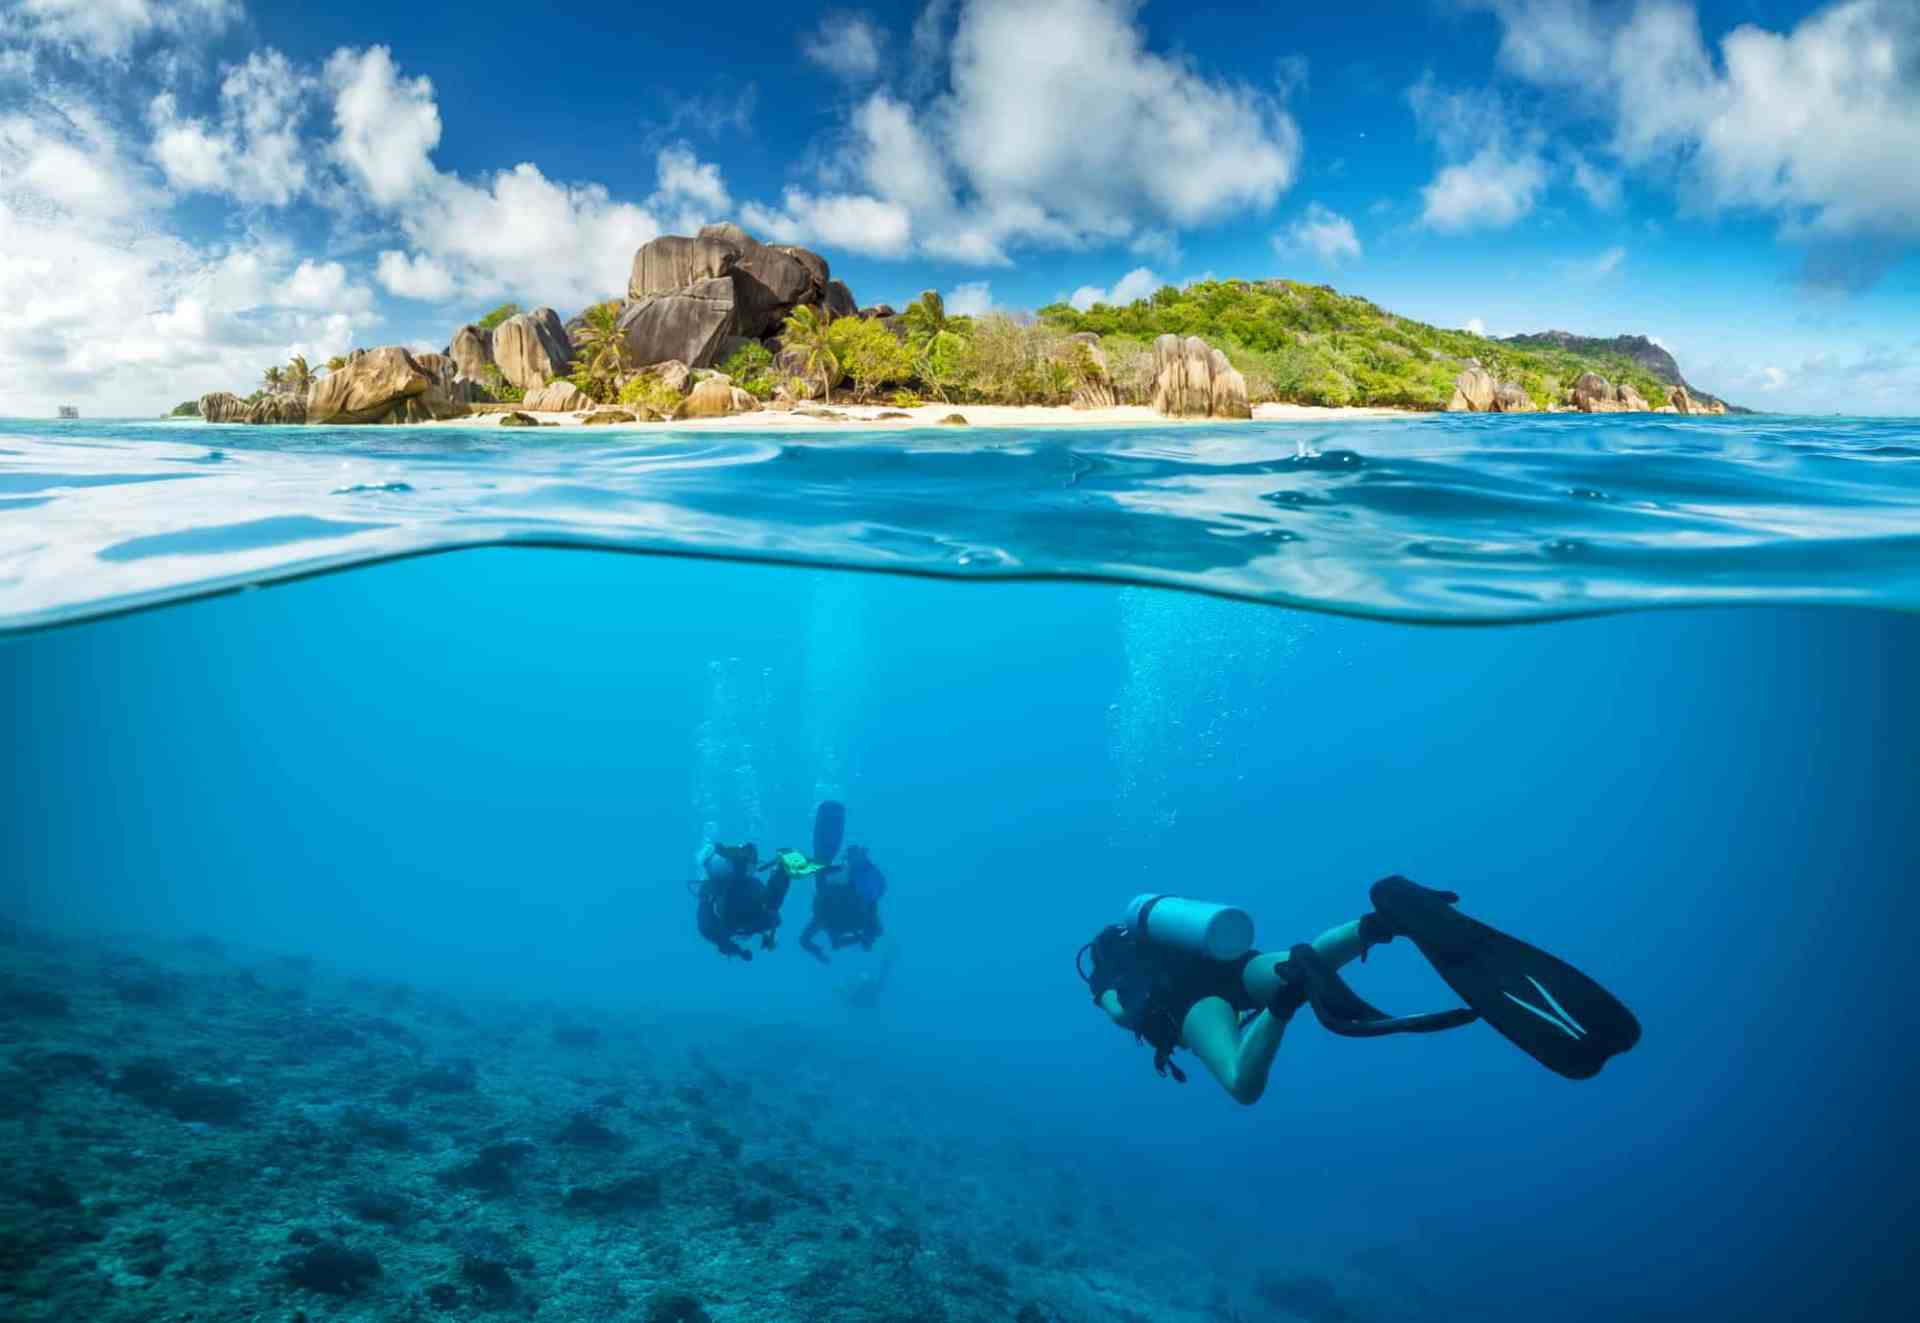 7 Great Cruise Destinations That Are Perfect for Scuba Diving